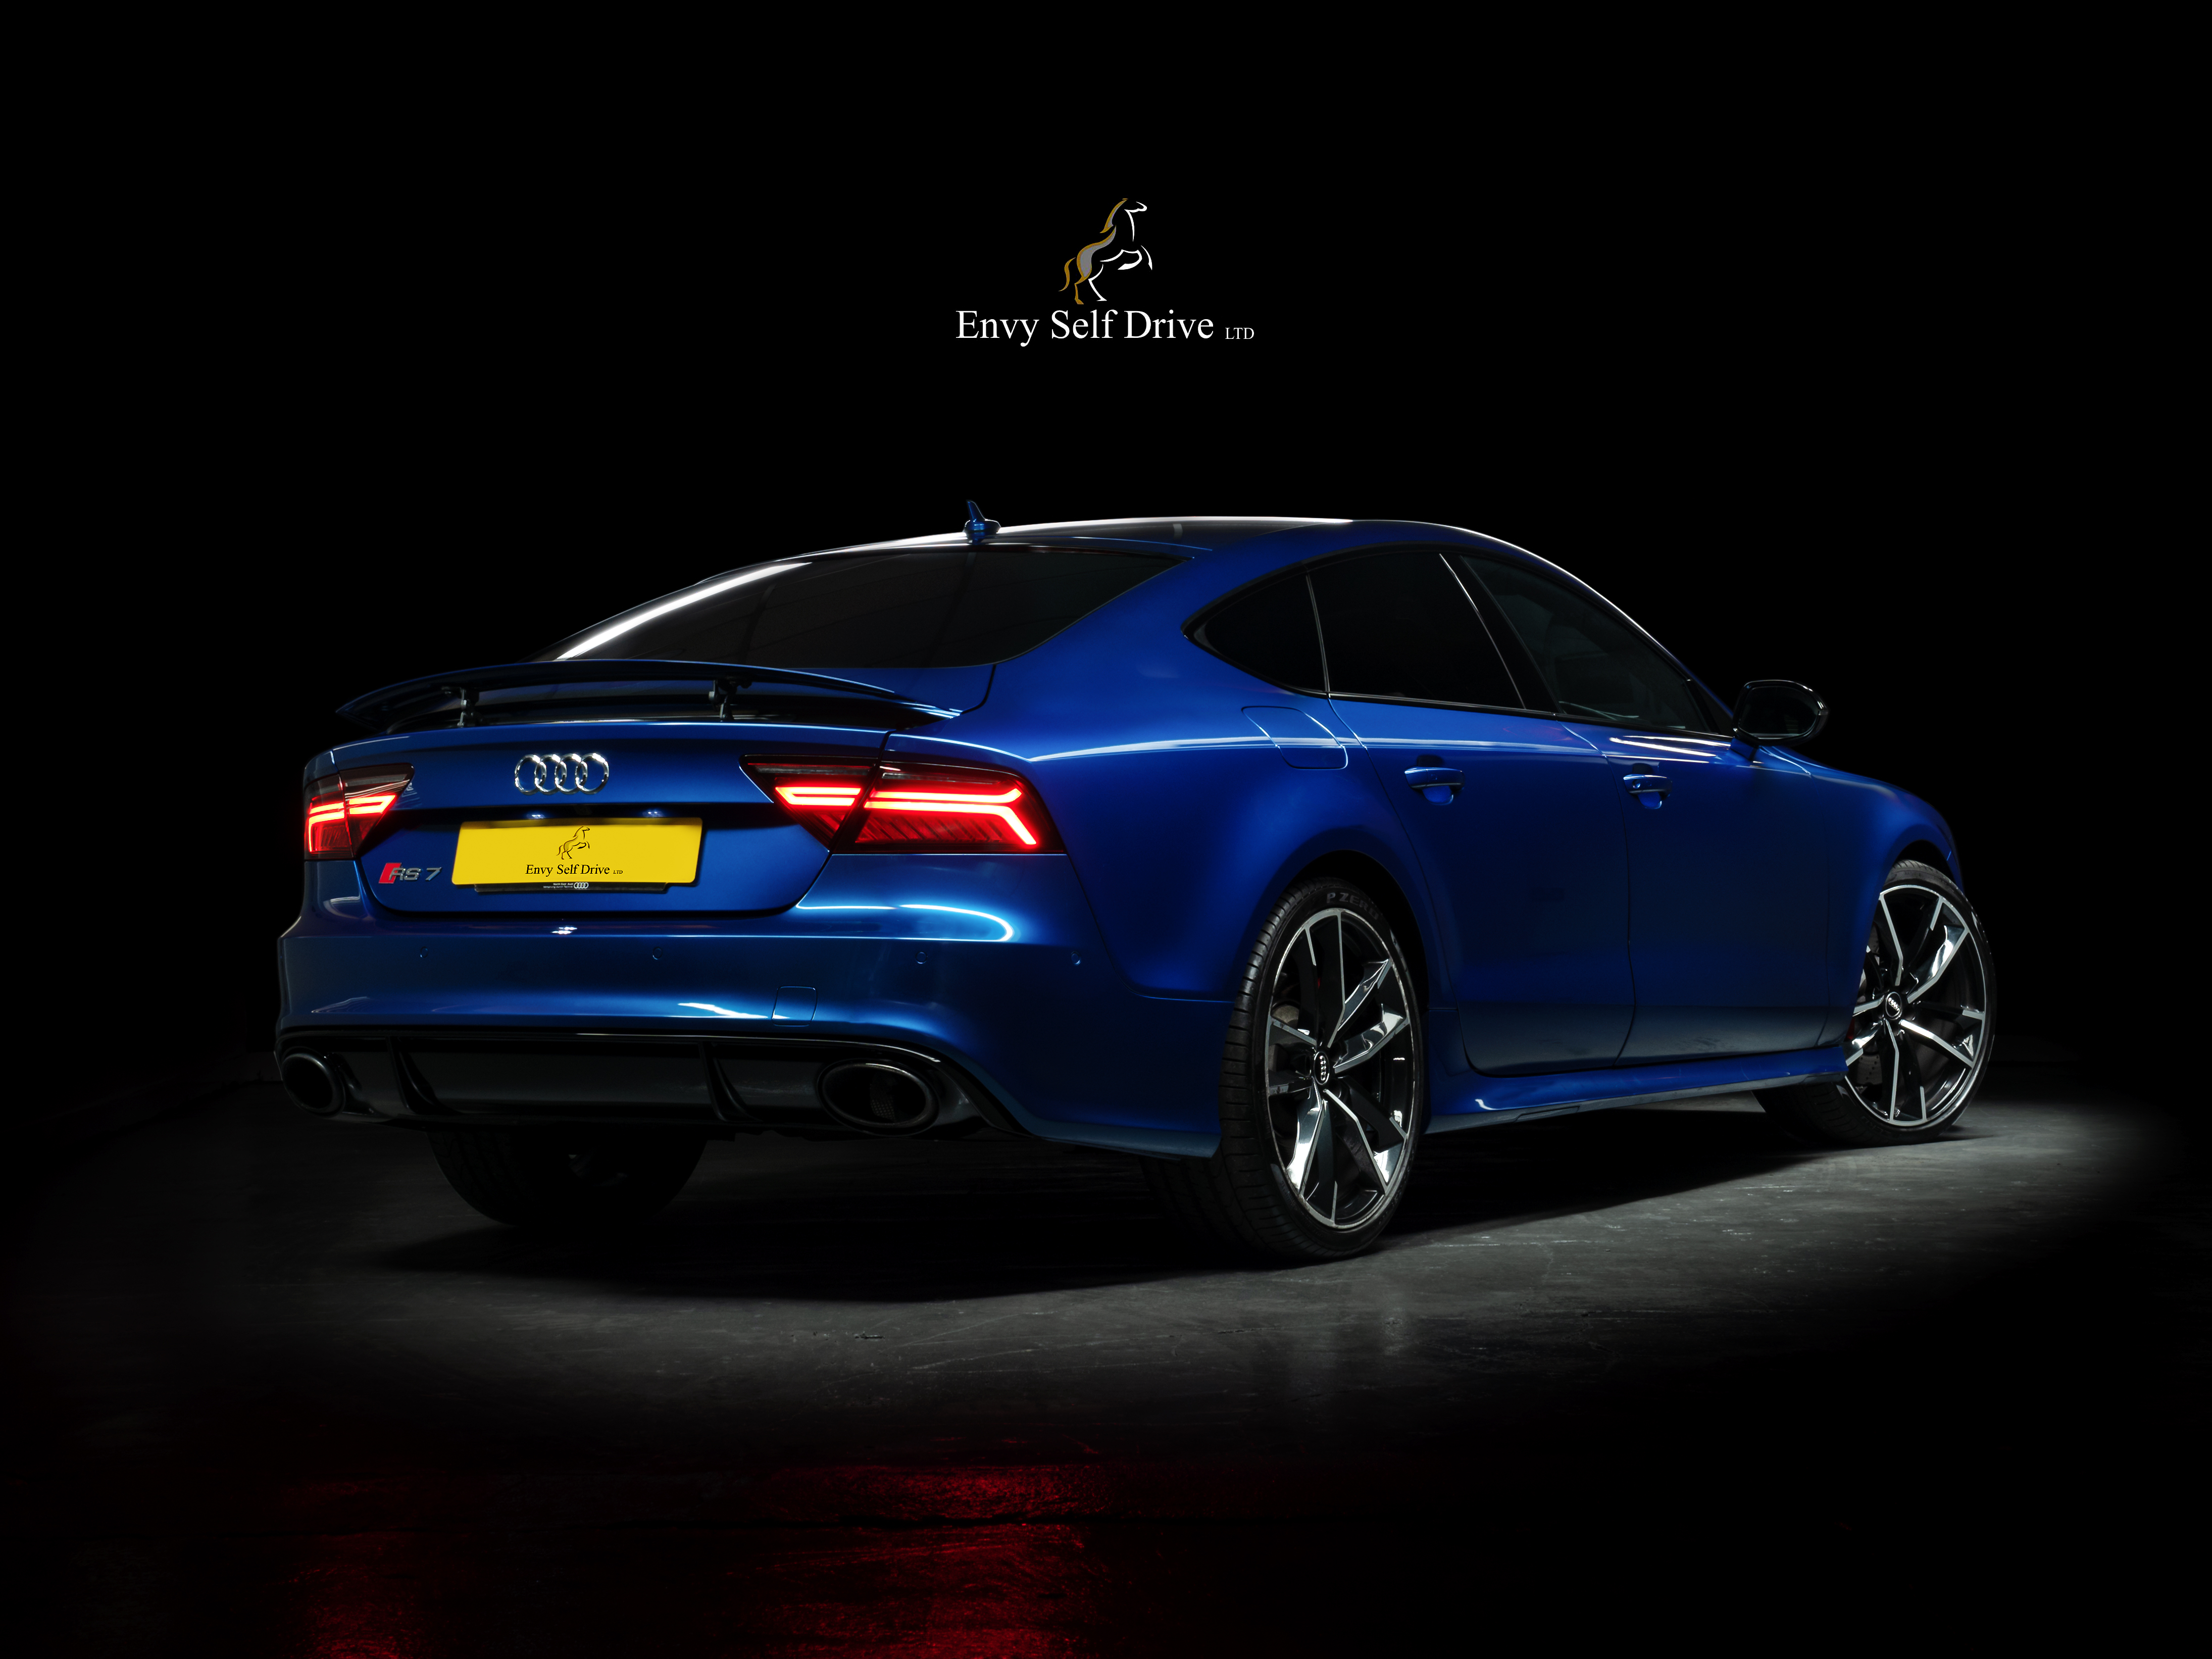 Audi RS7 for Hire